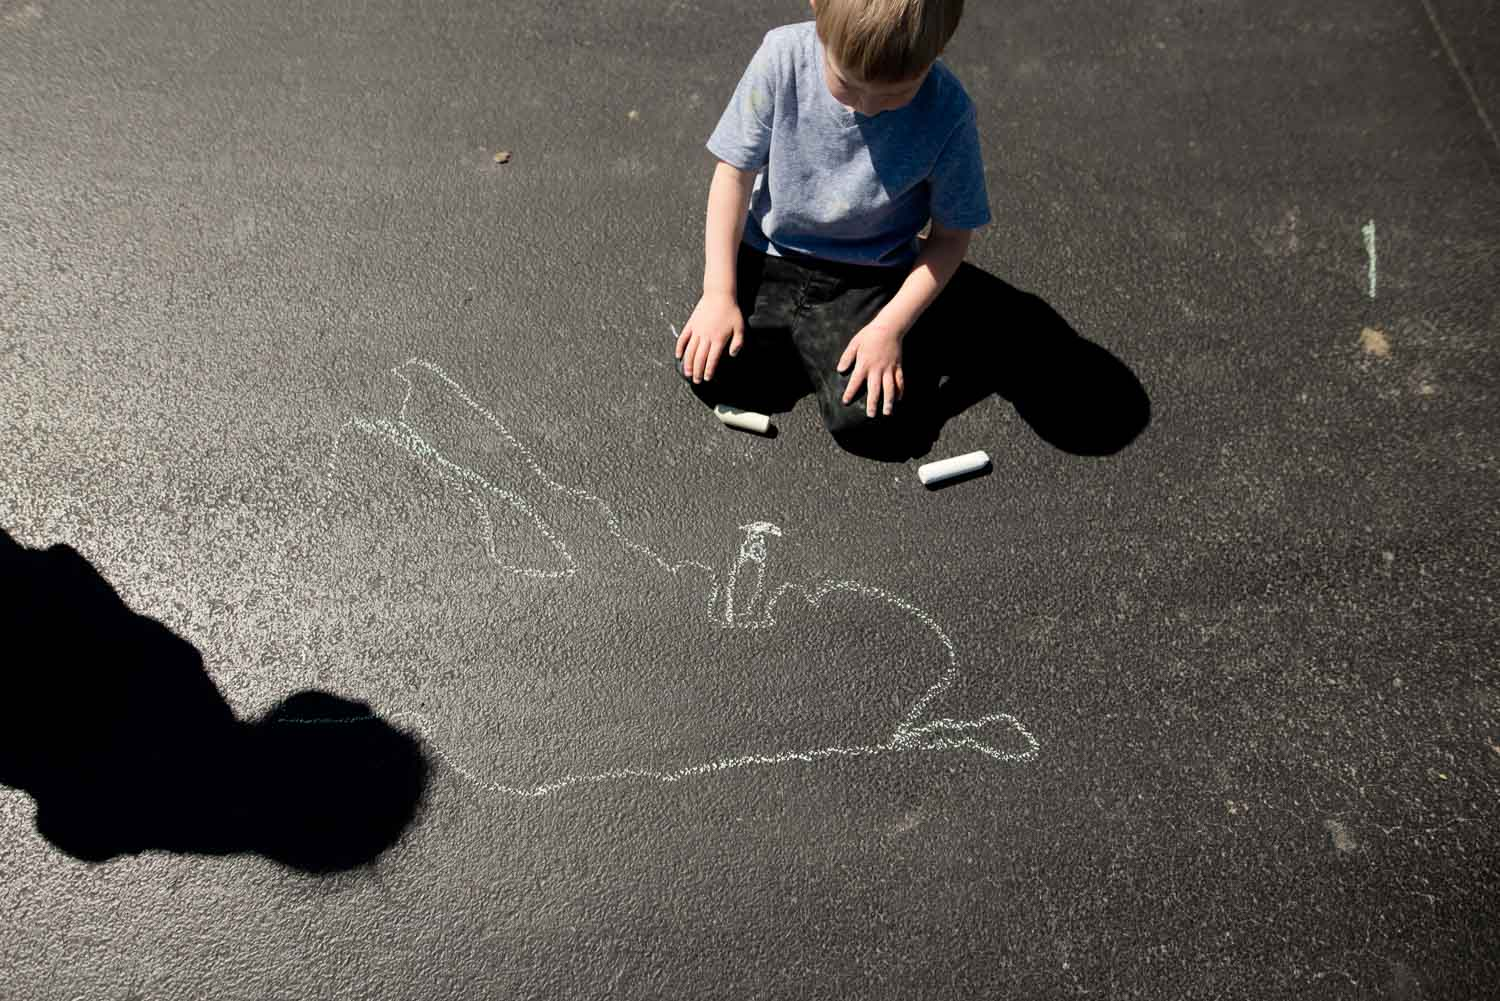 Chalk drawing activity for kids using shadow tracing as inspiration